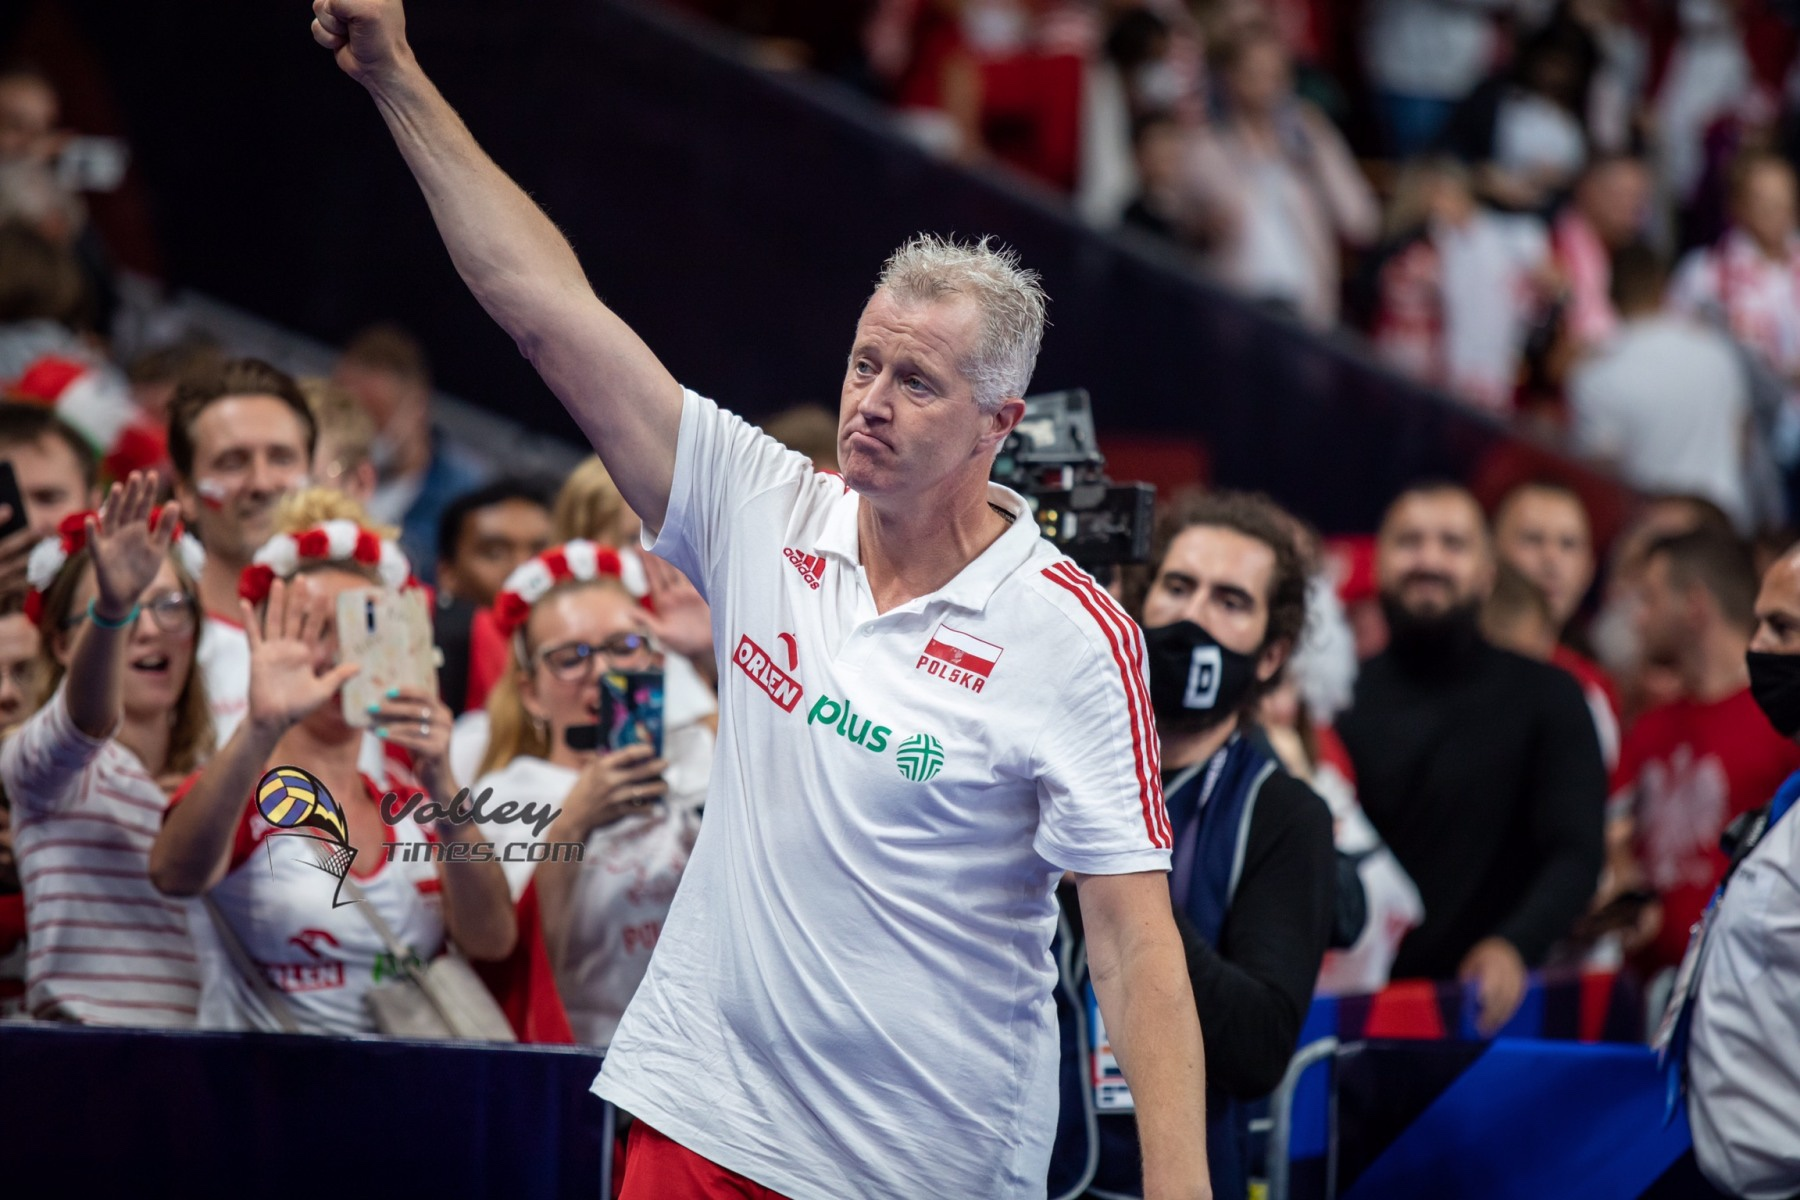 """Eurovolley 2021: Heynen's statement infuriates Slovenians: """"Another provocation on his part"""""""